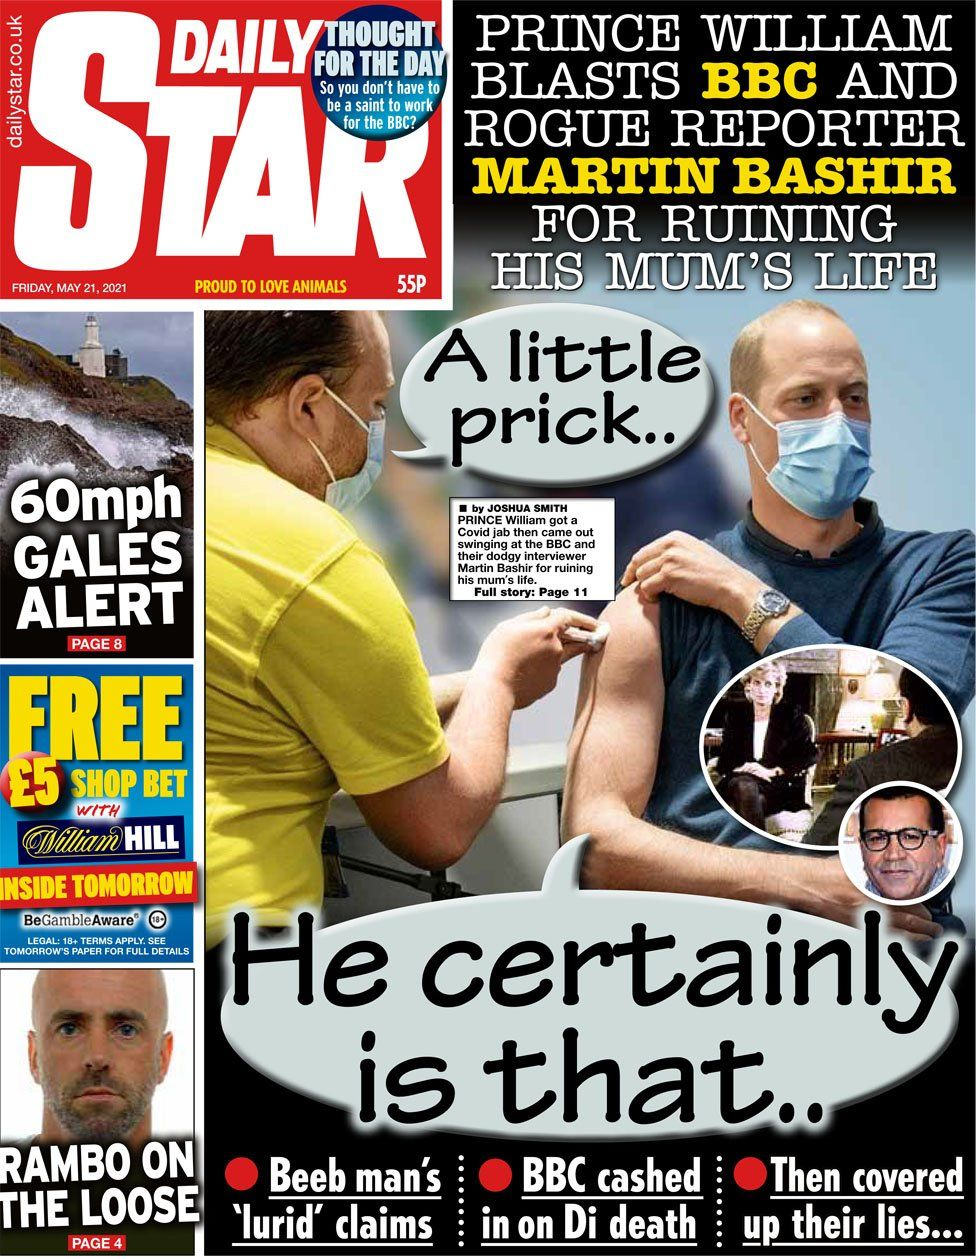 The Daily Star 21 May